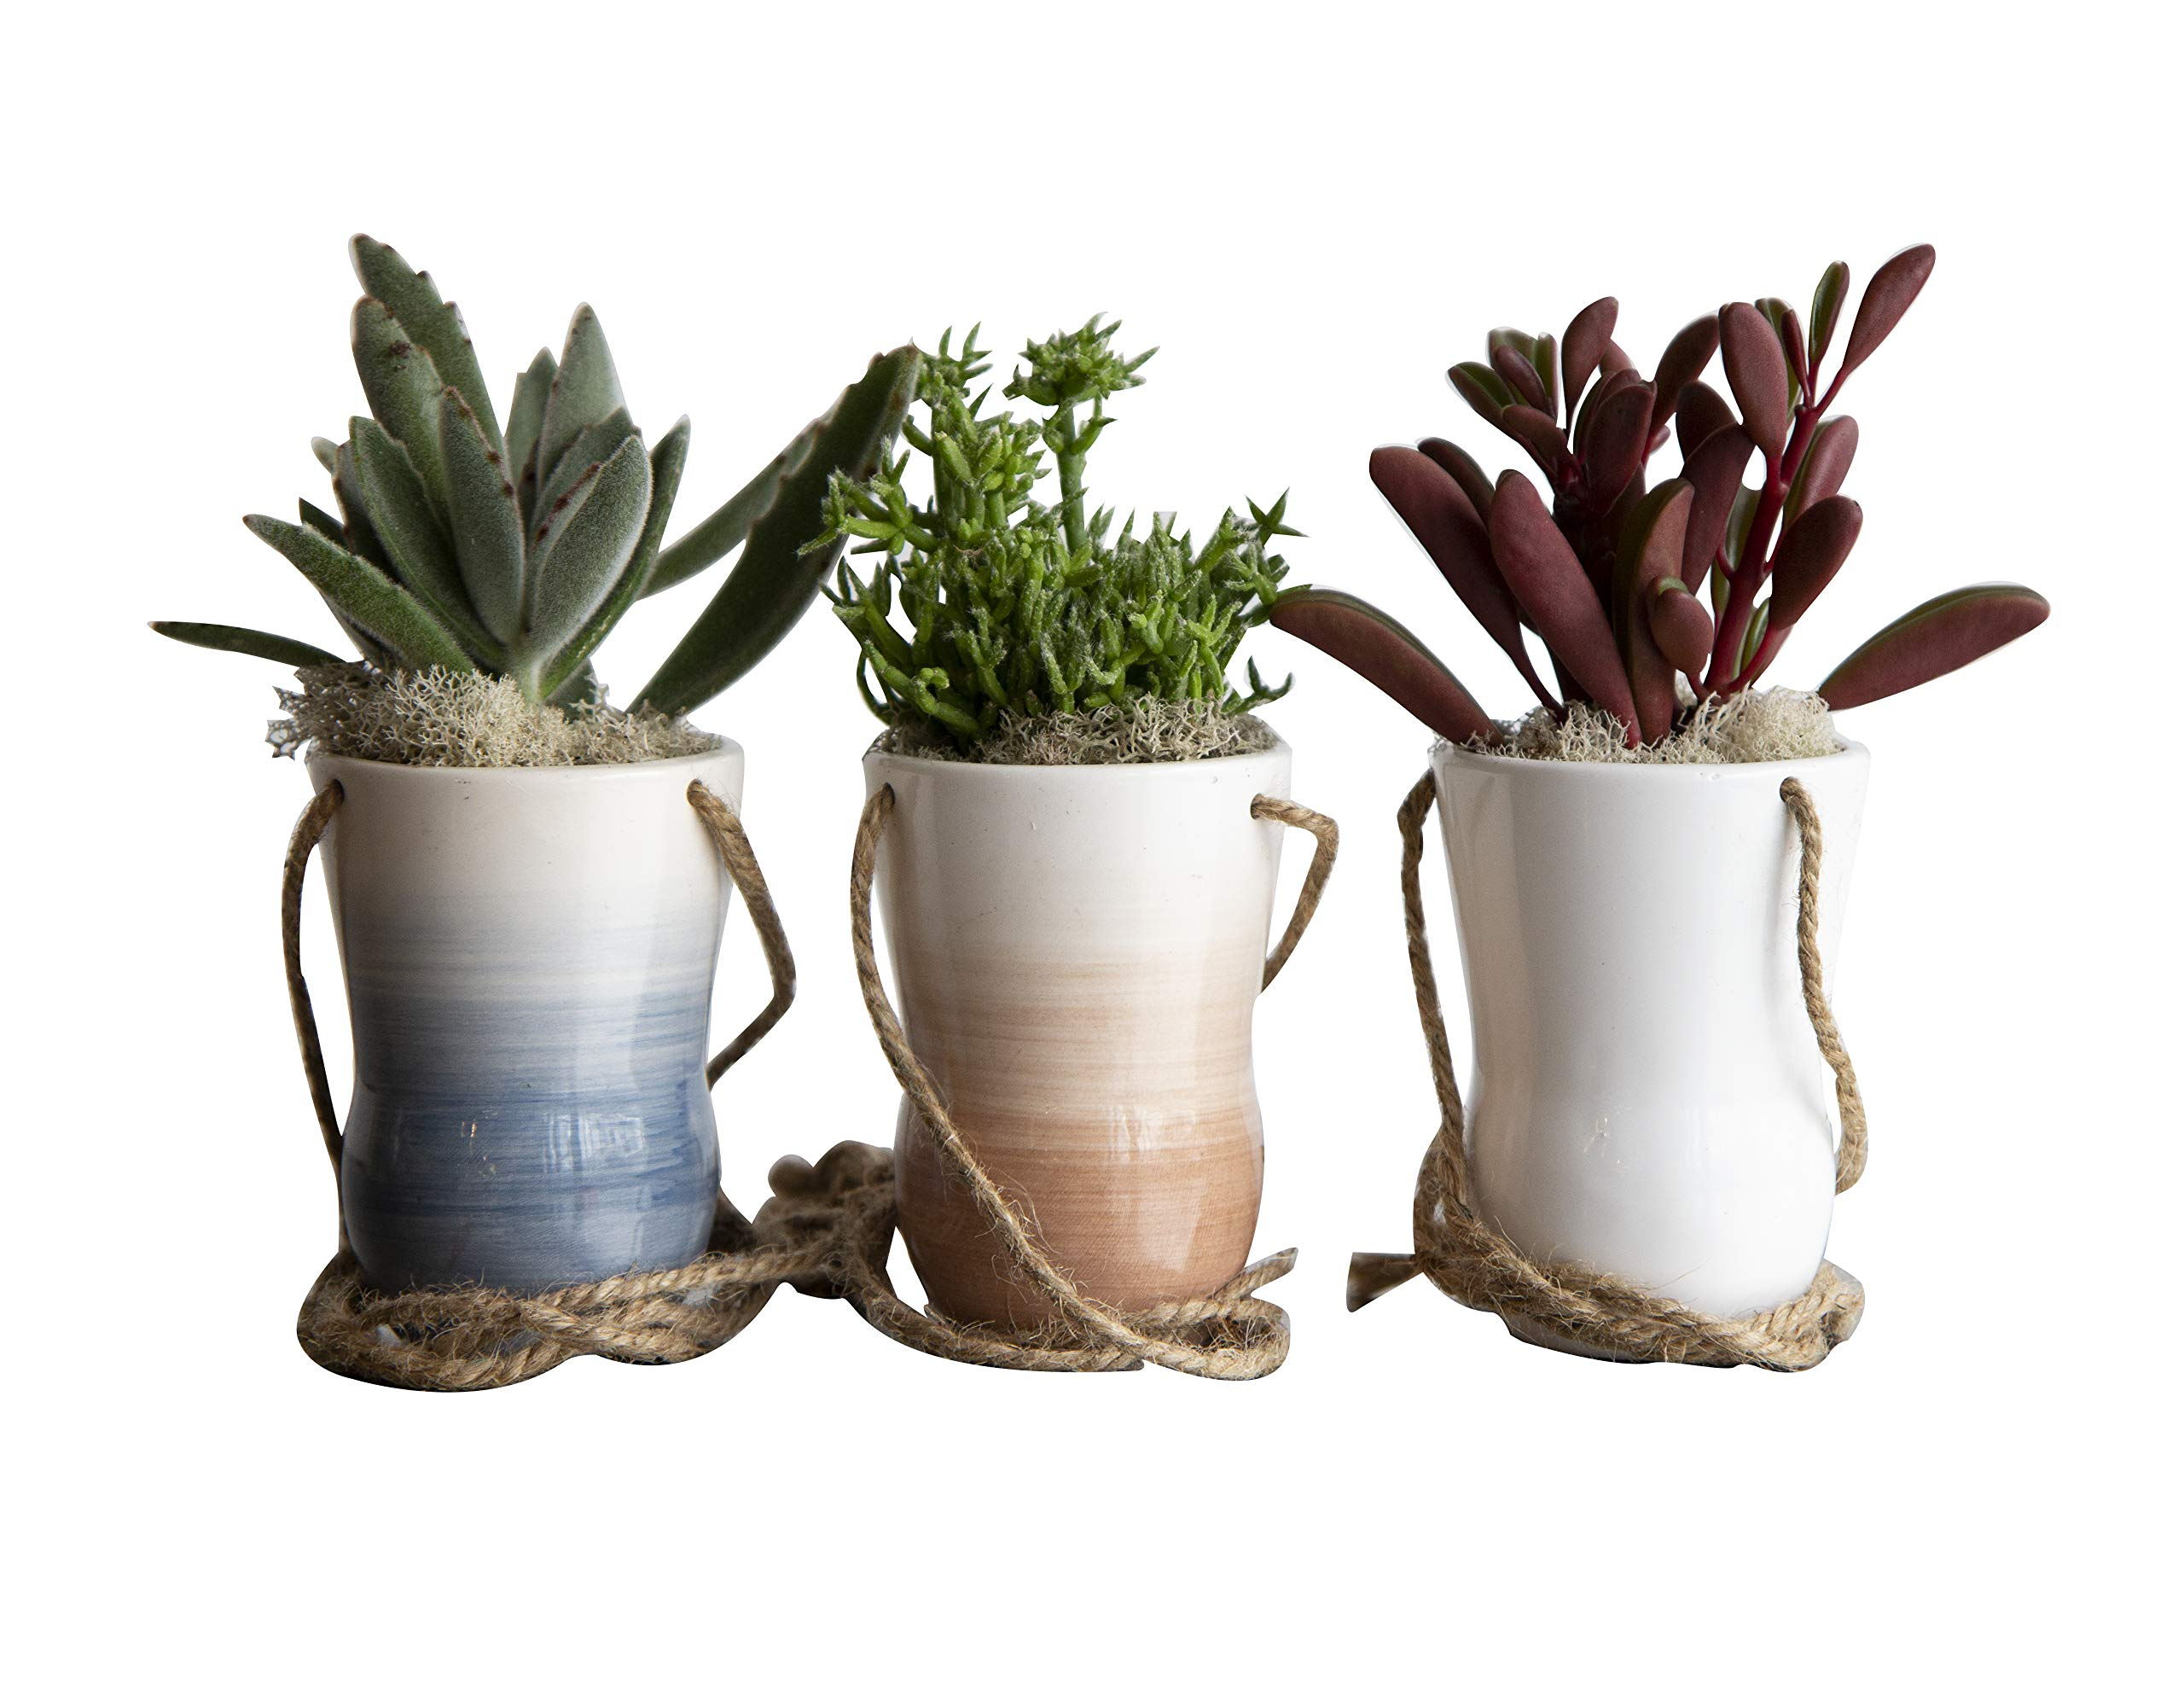 Hallmark Flowers 3 Piece Succulents In 4-Inch Ceramic Hanging Containers